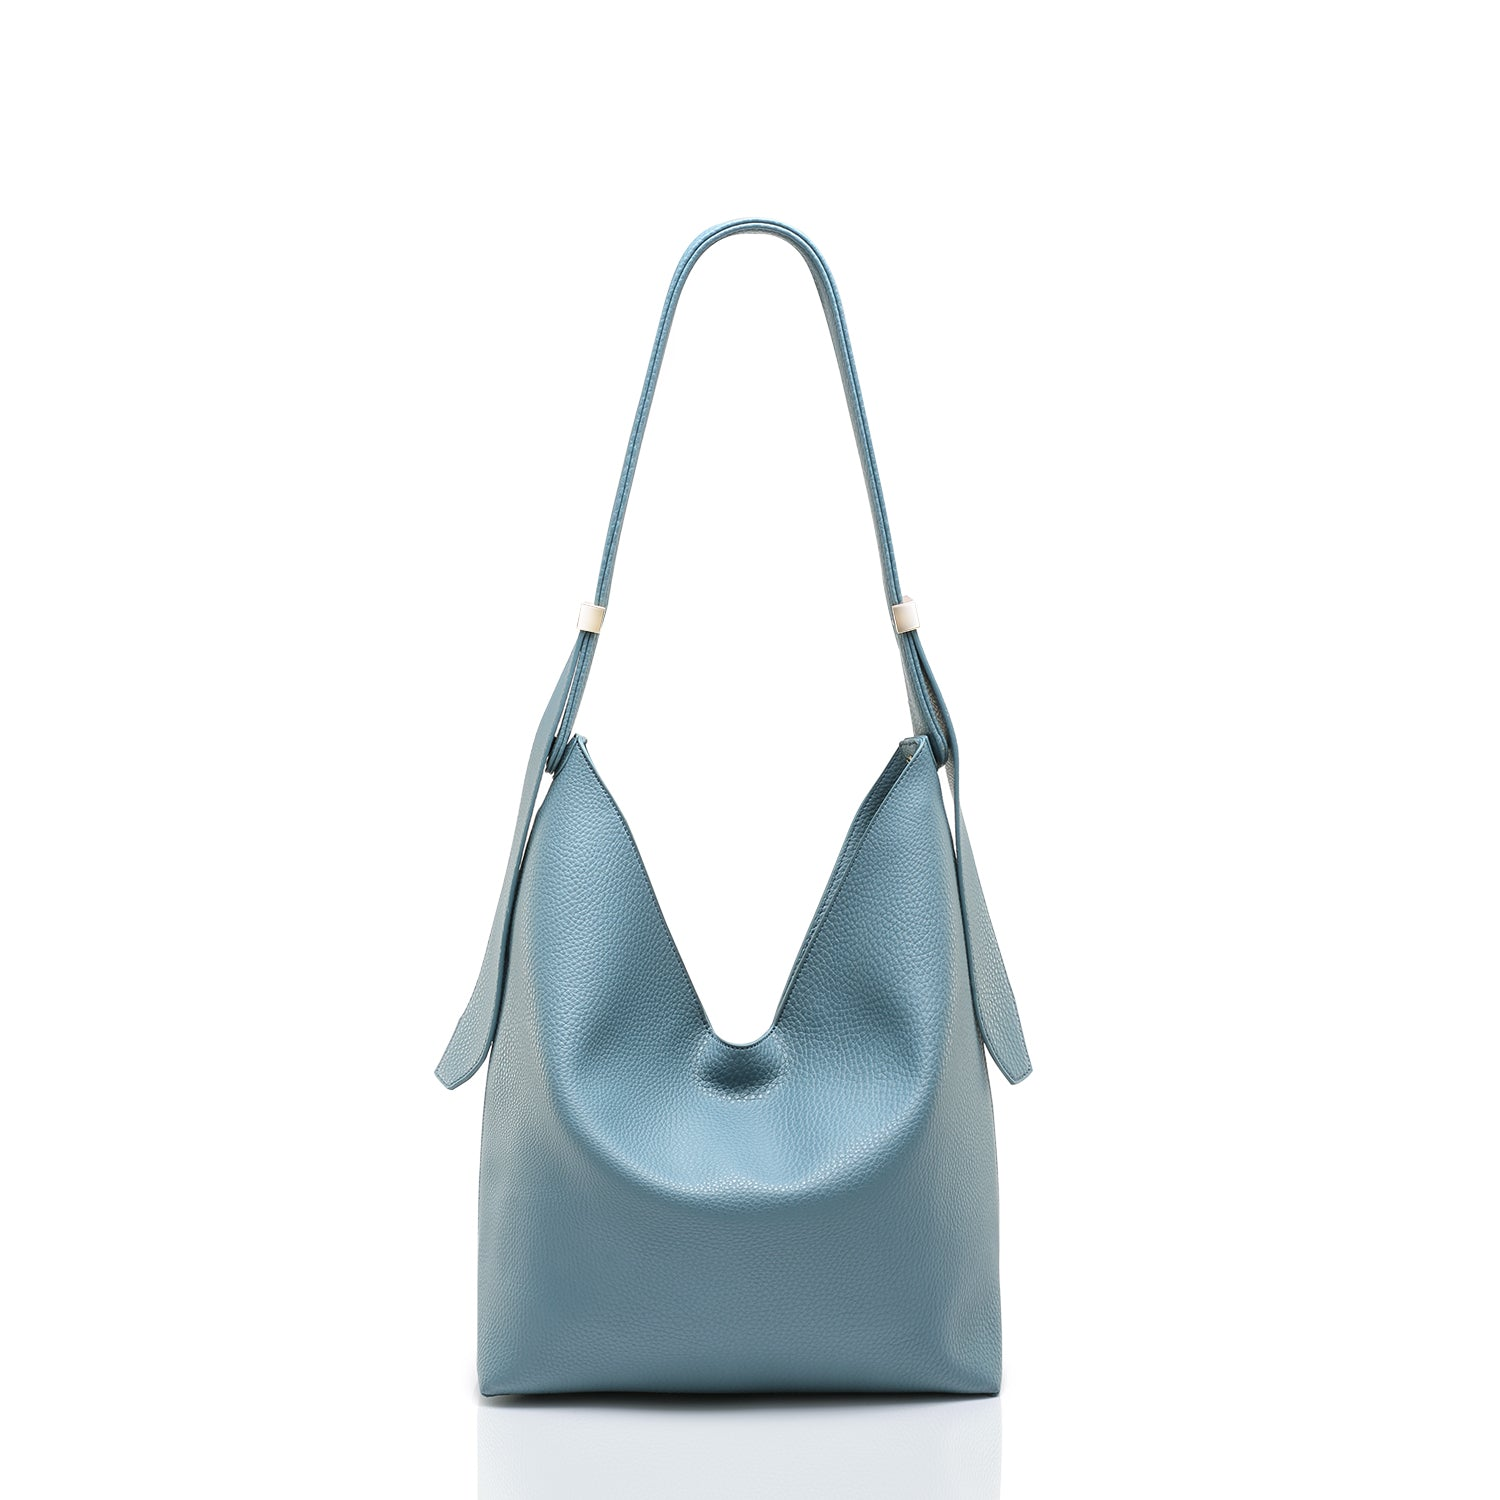 RIBAG HOBO MINI - LAKE BLUE